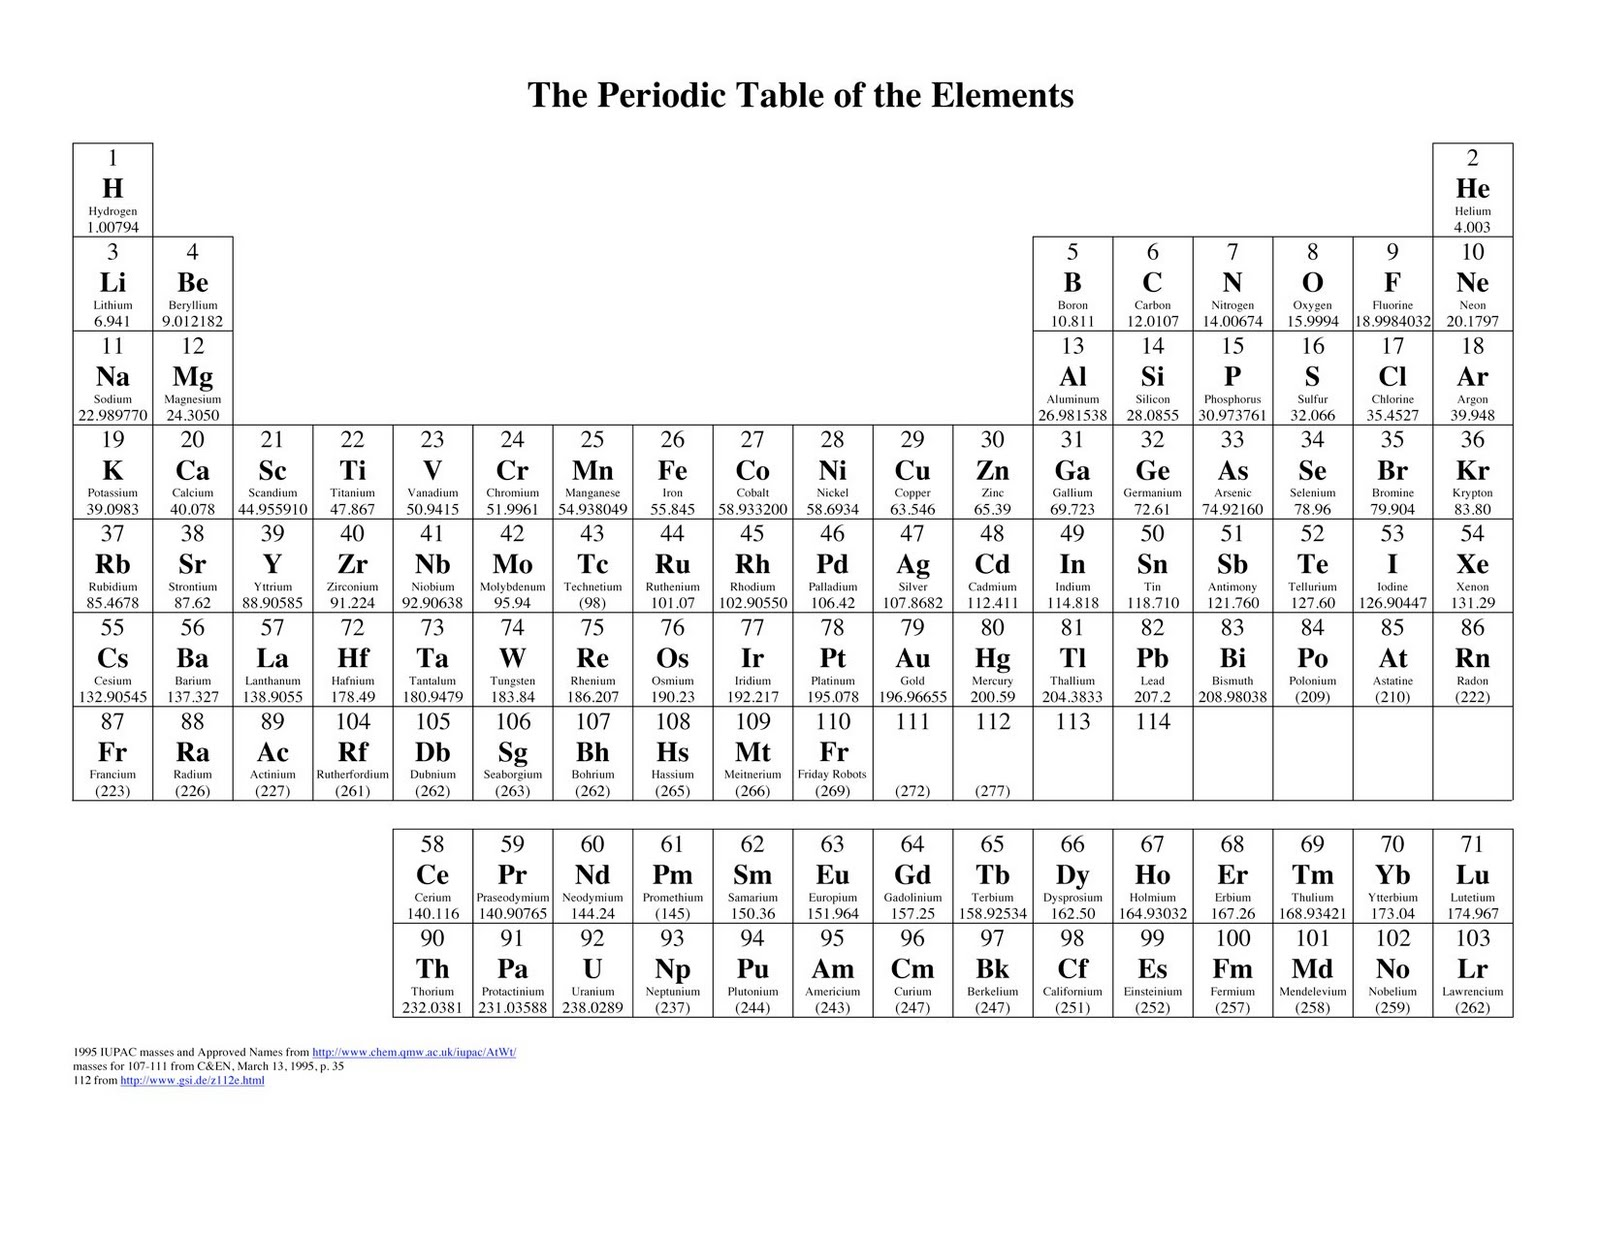 Periodic tables of the elements in american englishmichael canov amer10g gamestrikefo Gallery